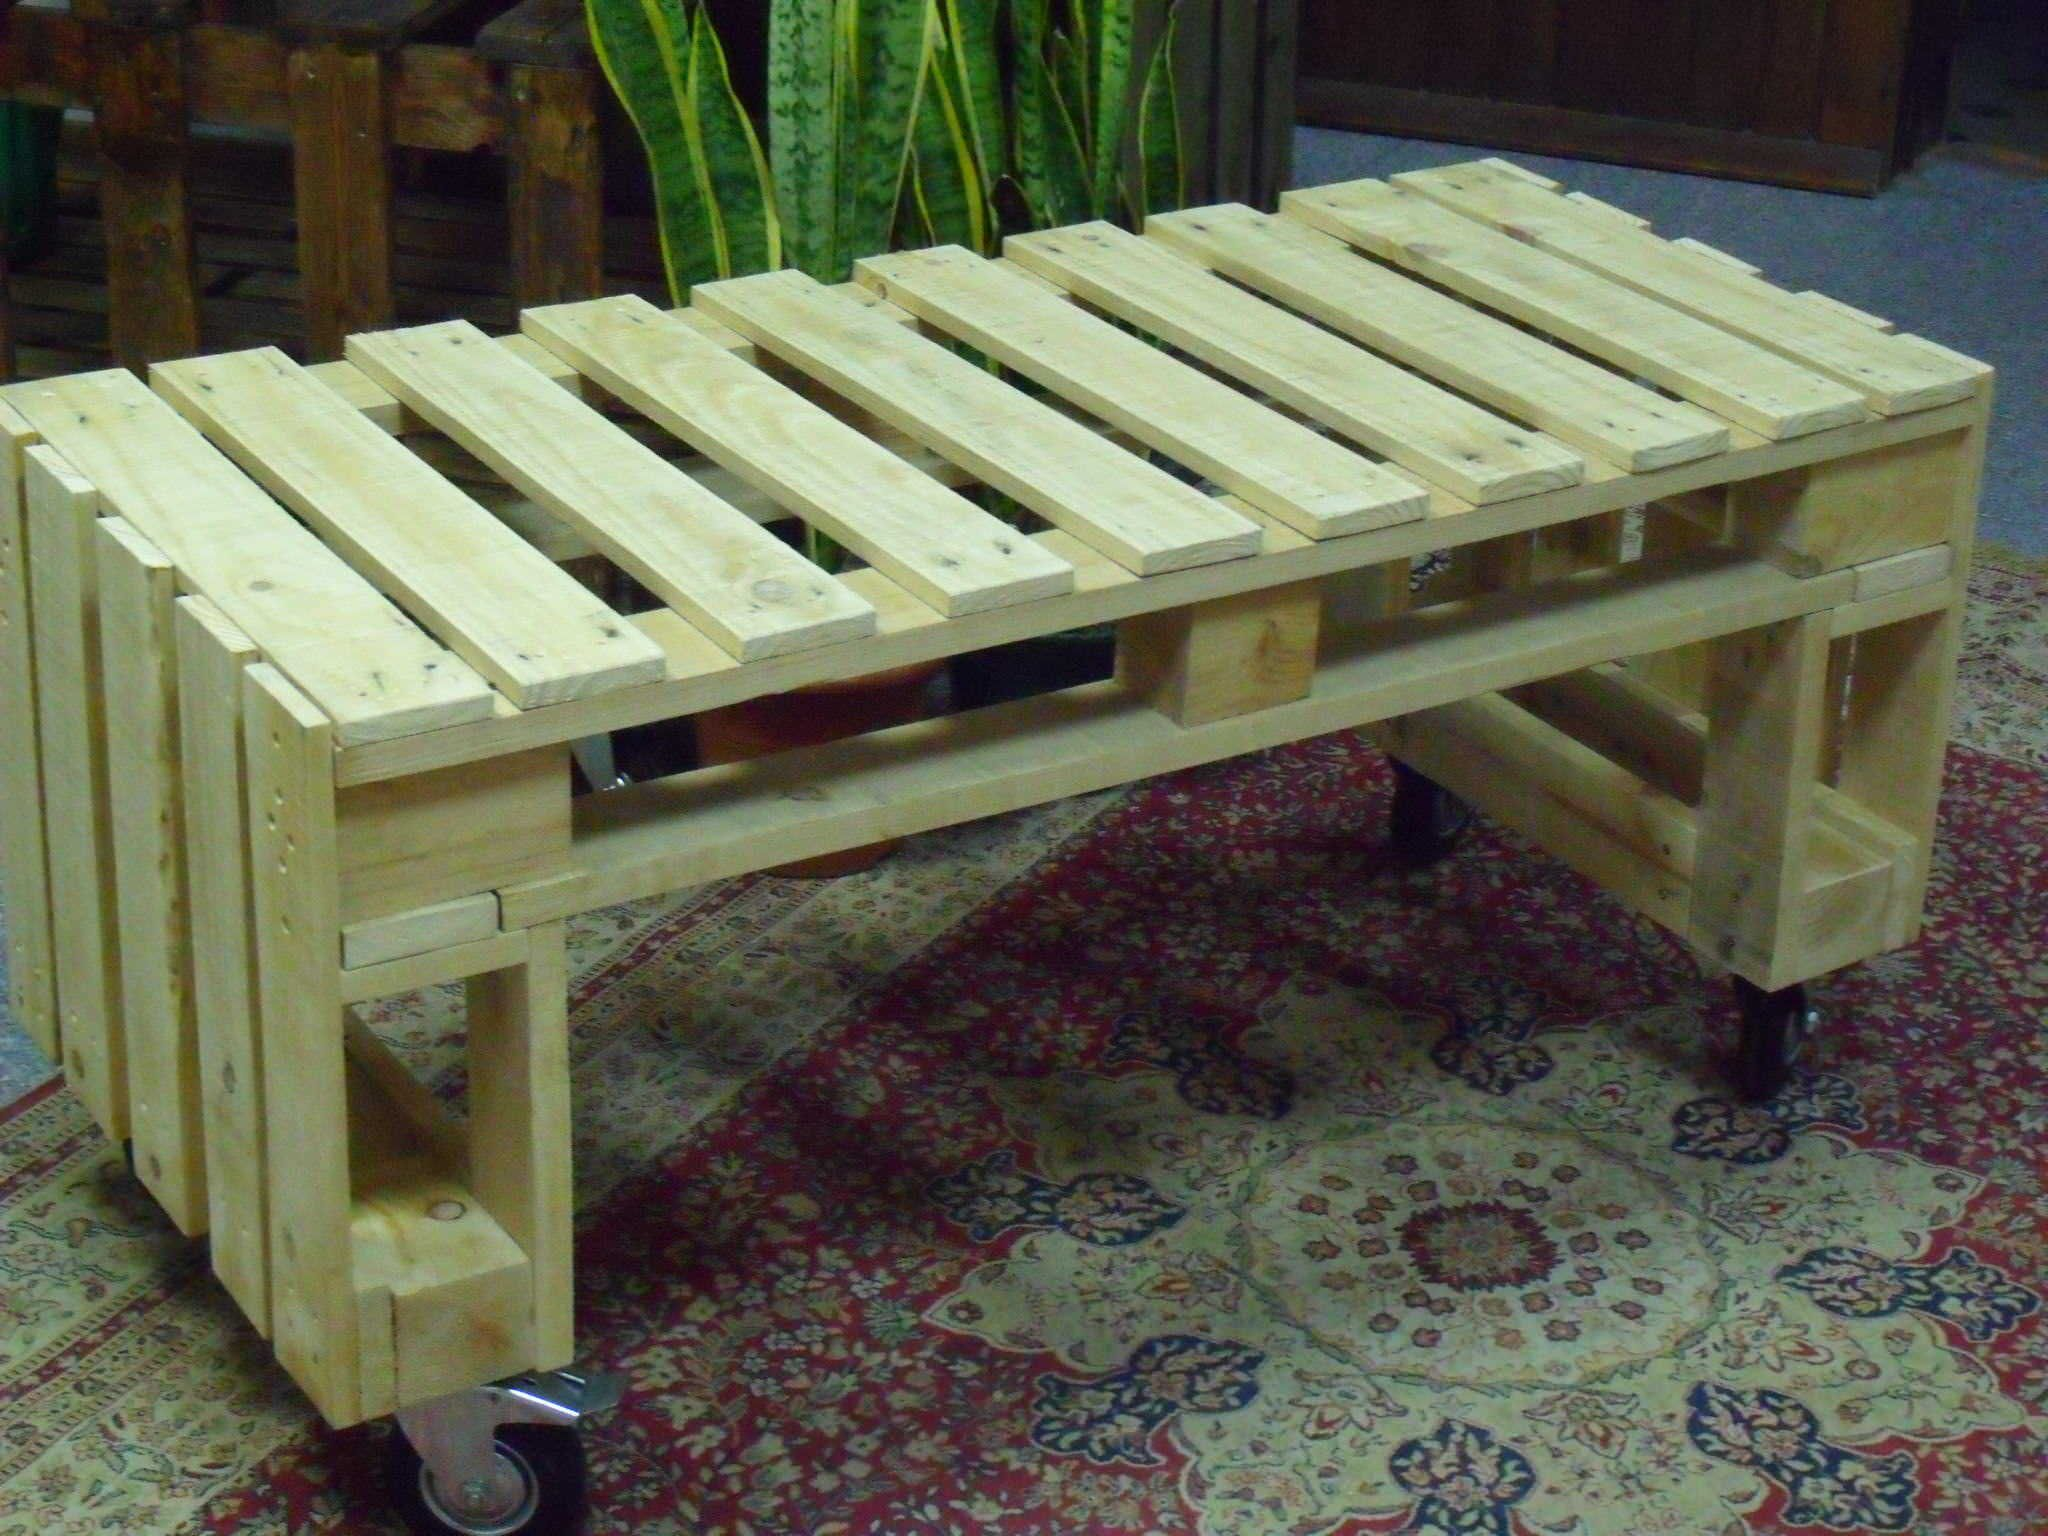 #PalletBench, #RecyclingWoodPallets, #RepurposedPallet